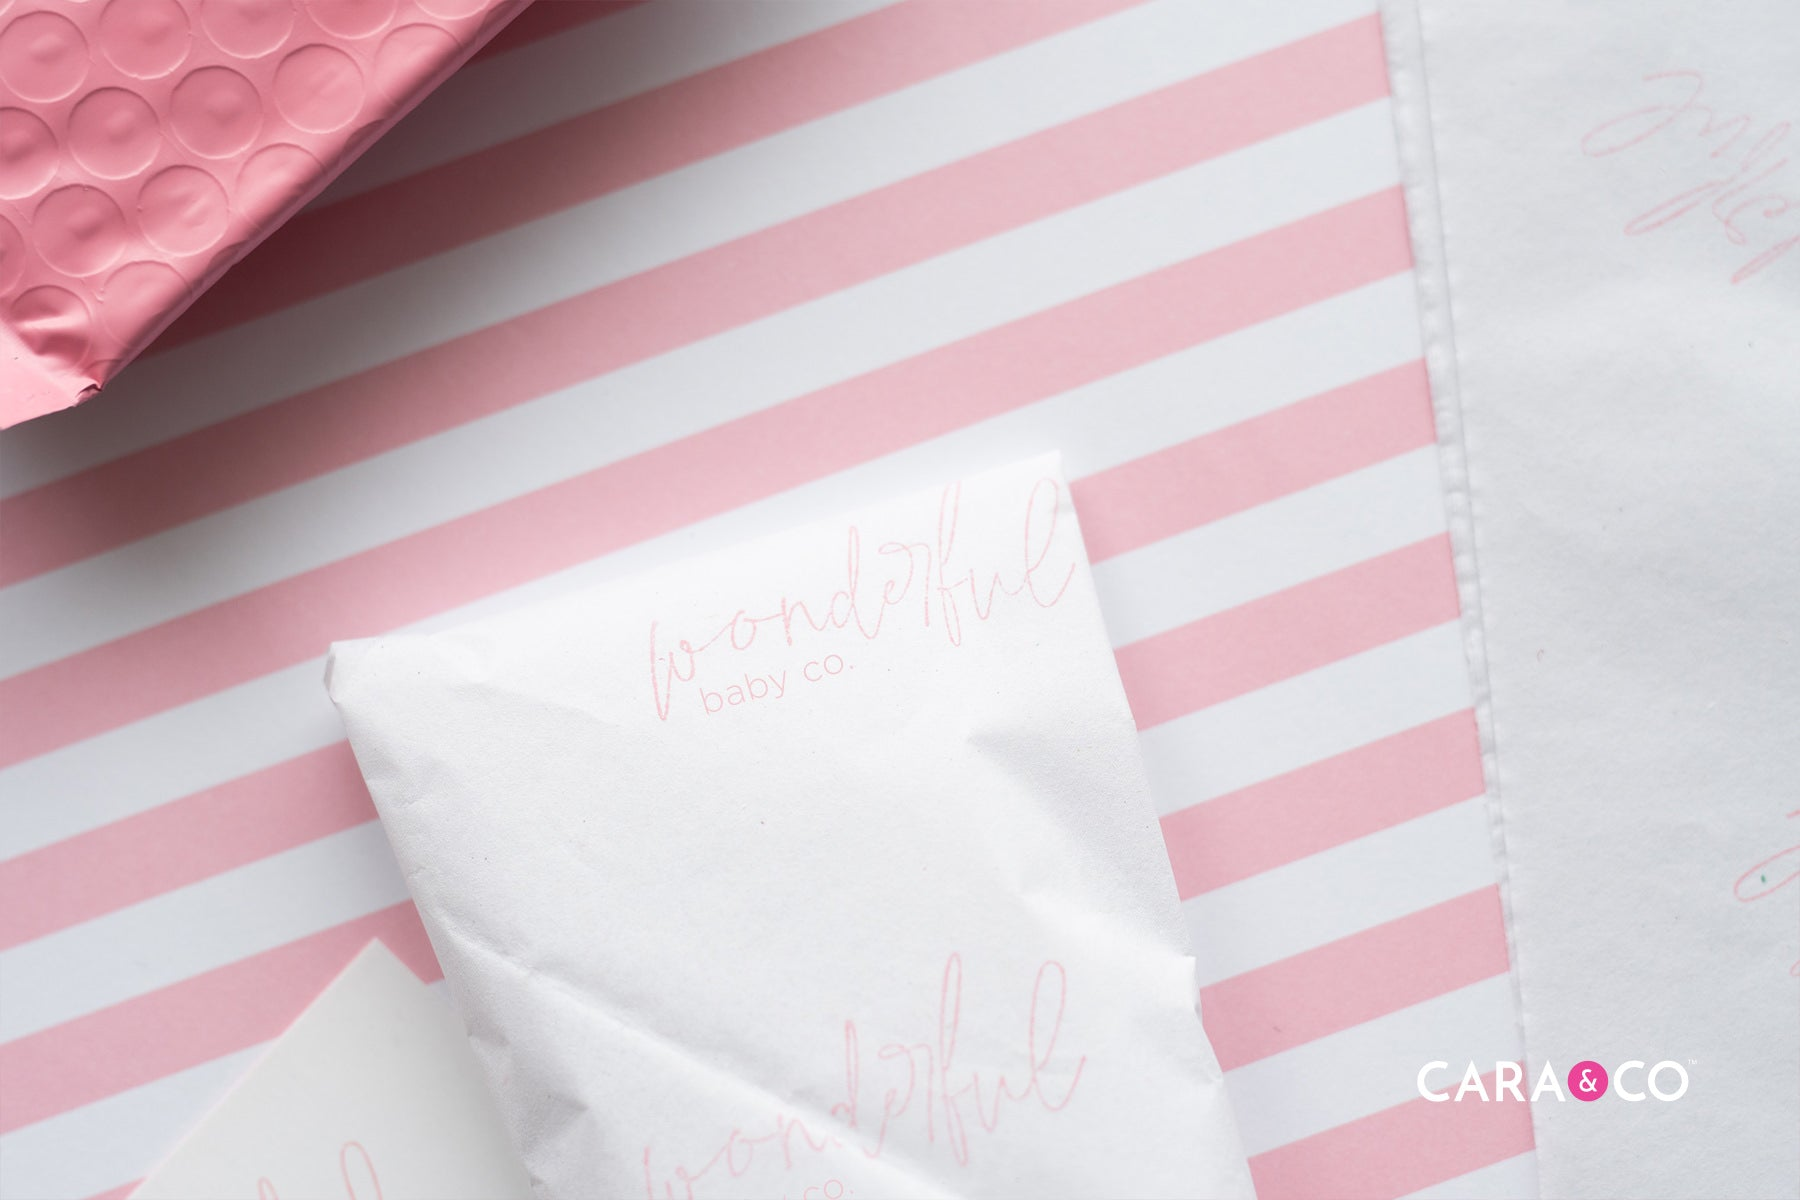 Packaging Hacks - Customized business stamps - Cara & Co Blog